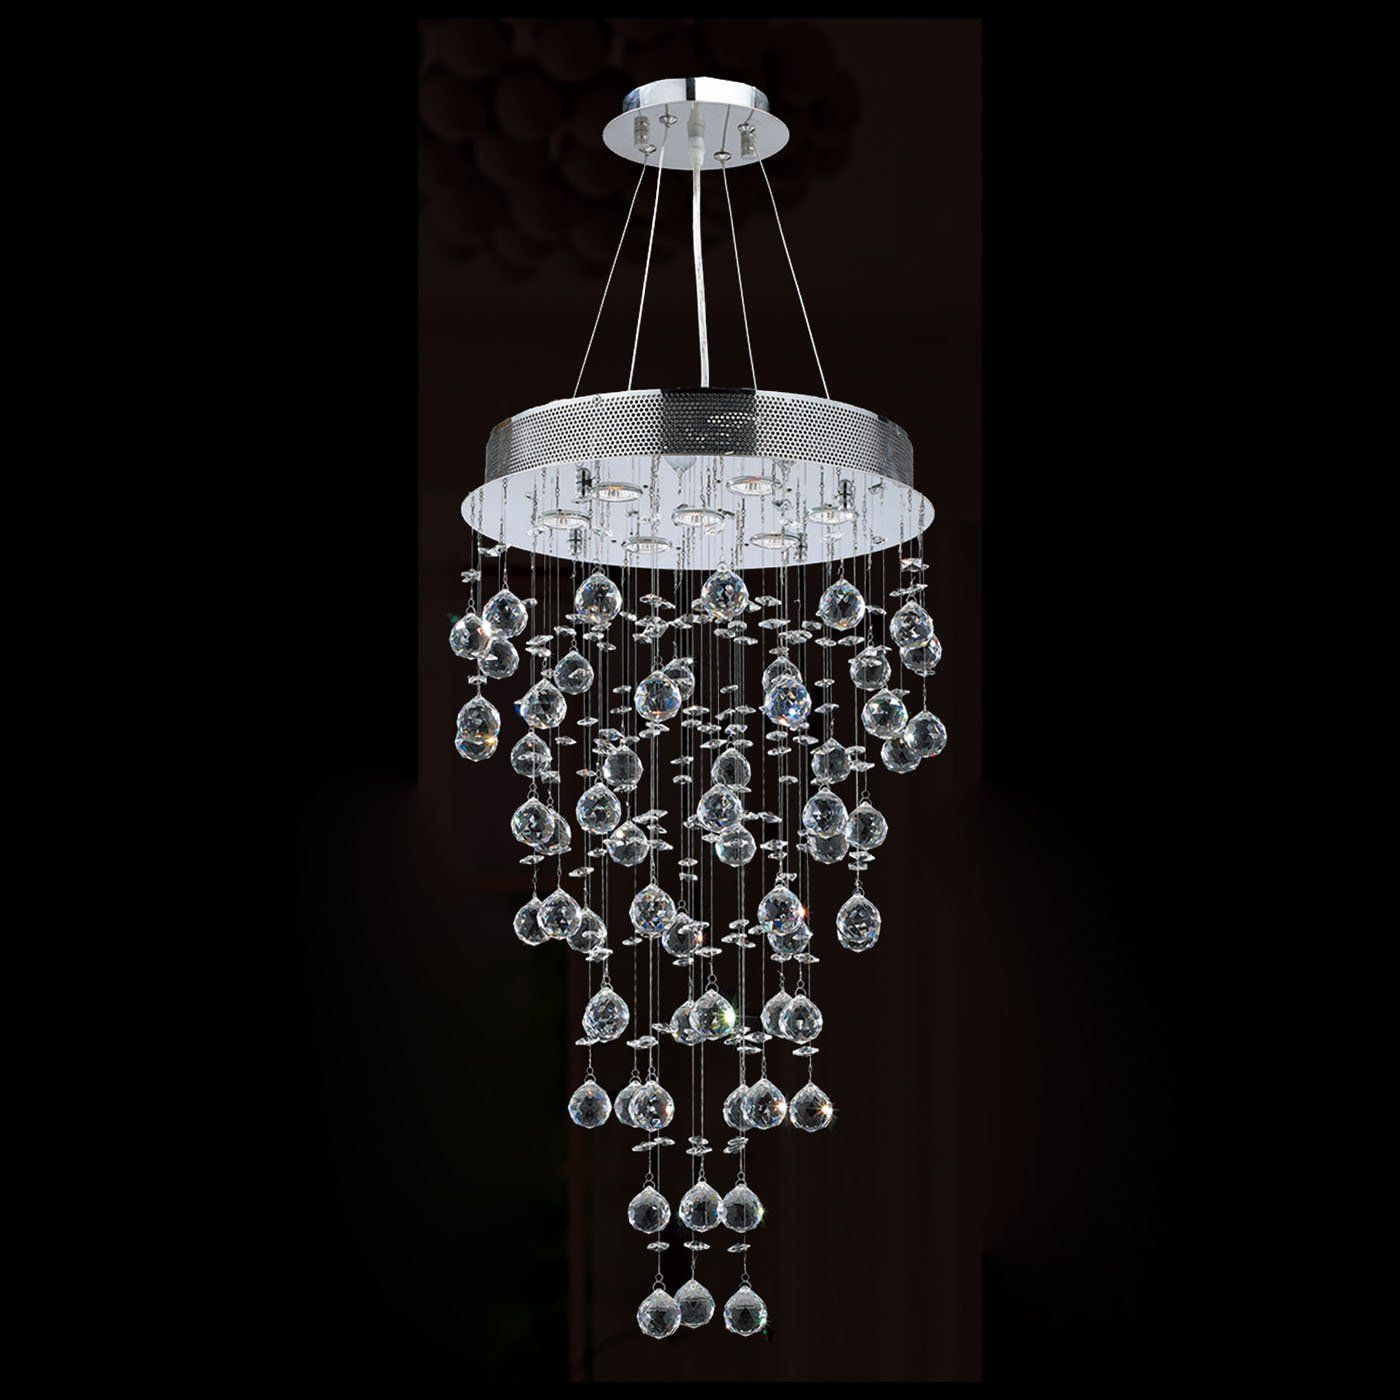 Worldwide lighting w83211c16 7 light icicle large pendant atg worldwide lighting w83211c16 7 light icicle large pendant atg stores chandeliers on salecrystal aloadofball Choice Image